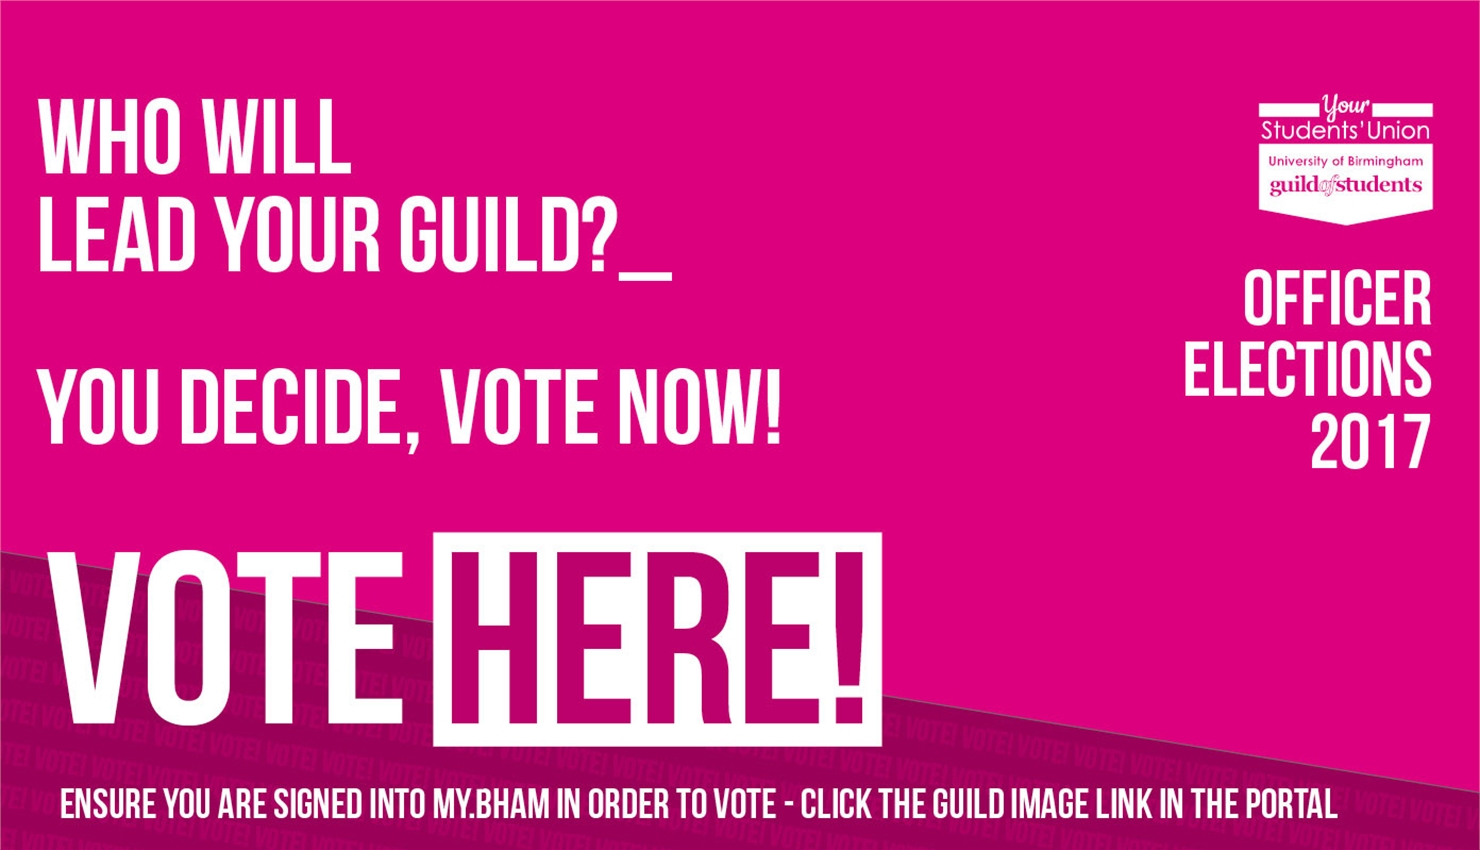 Guild Elections 2017 - Who will lead your guild - vote now